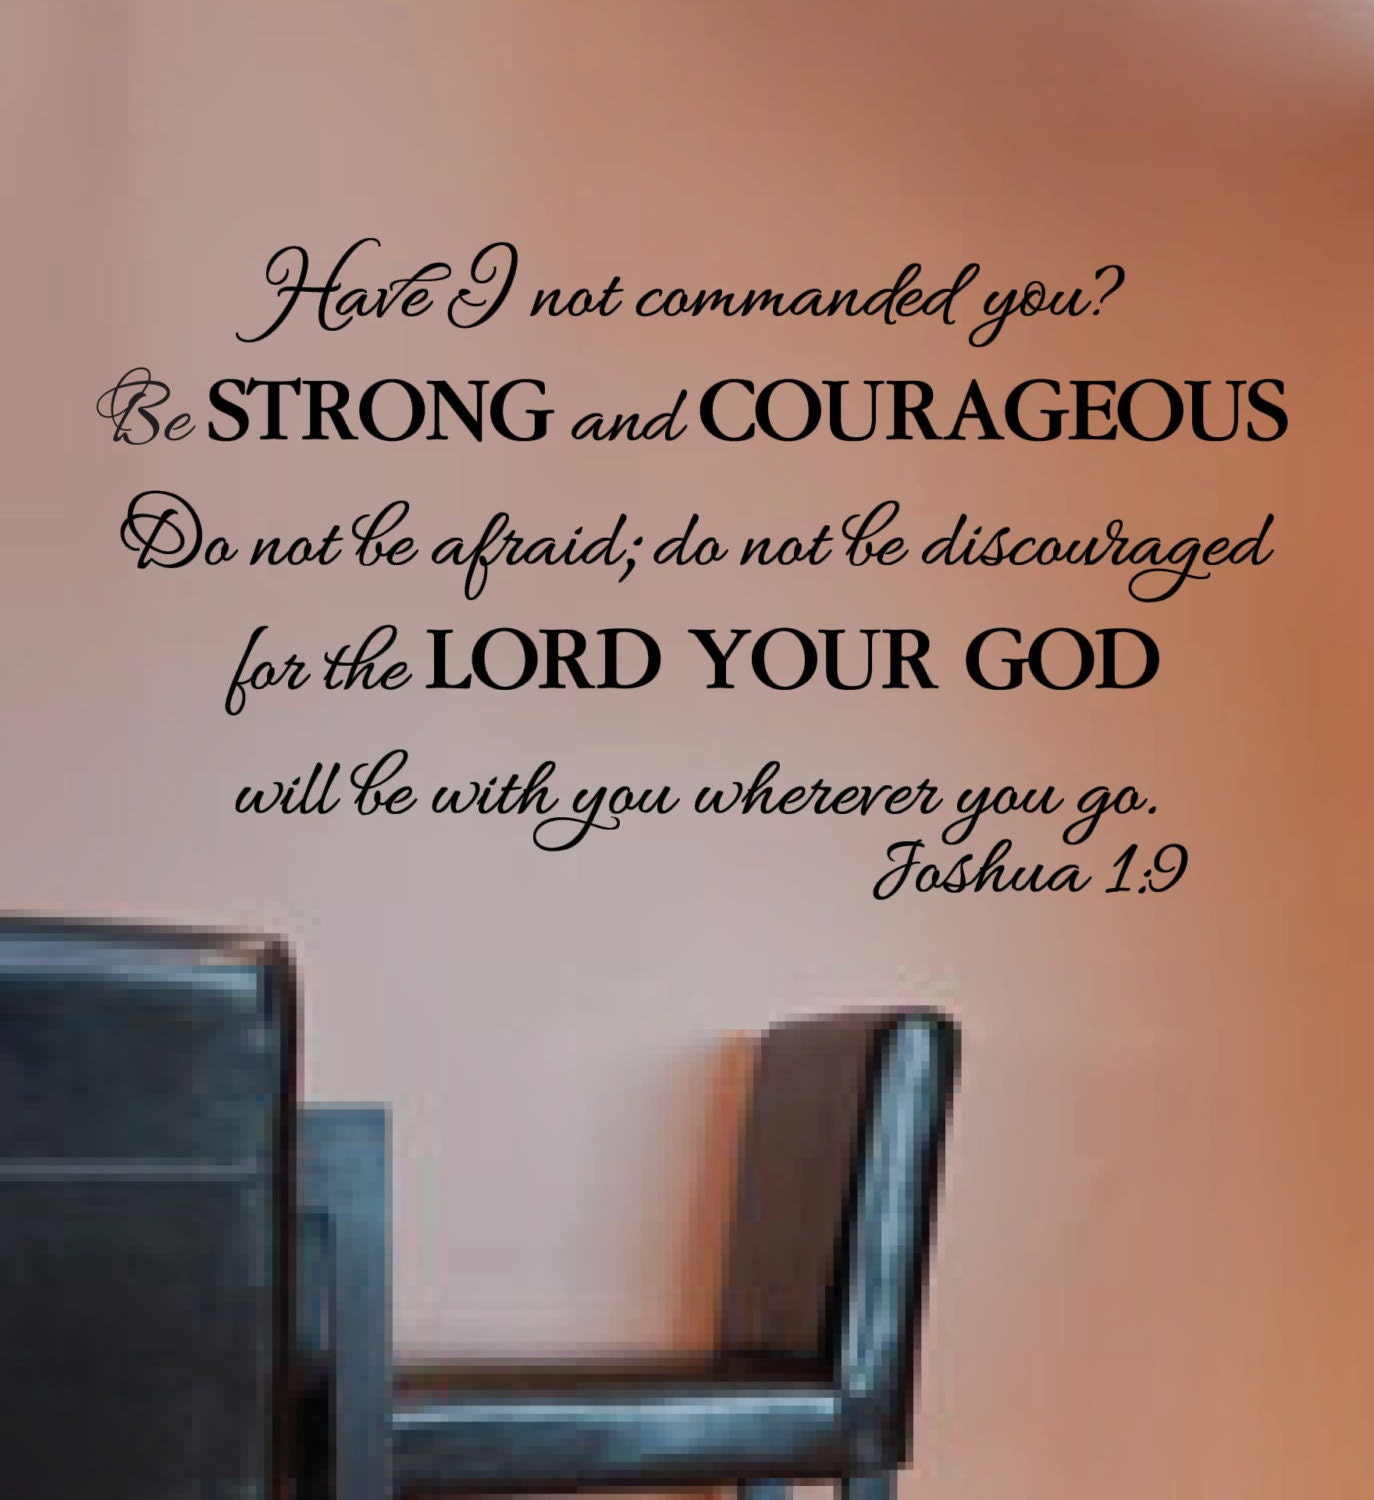 Strength Quotes From The Bible Joshua 19 Do Not Be Afraid Do Not Be Discouraged Courageous